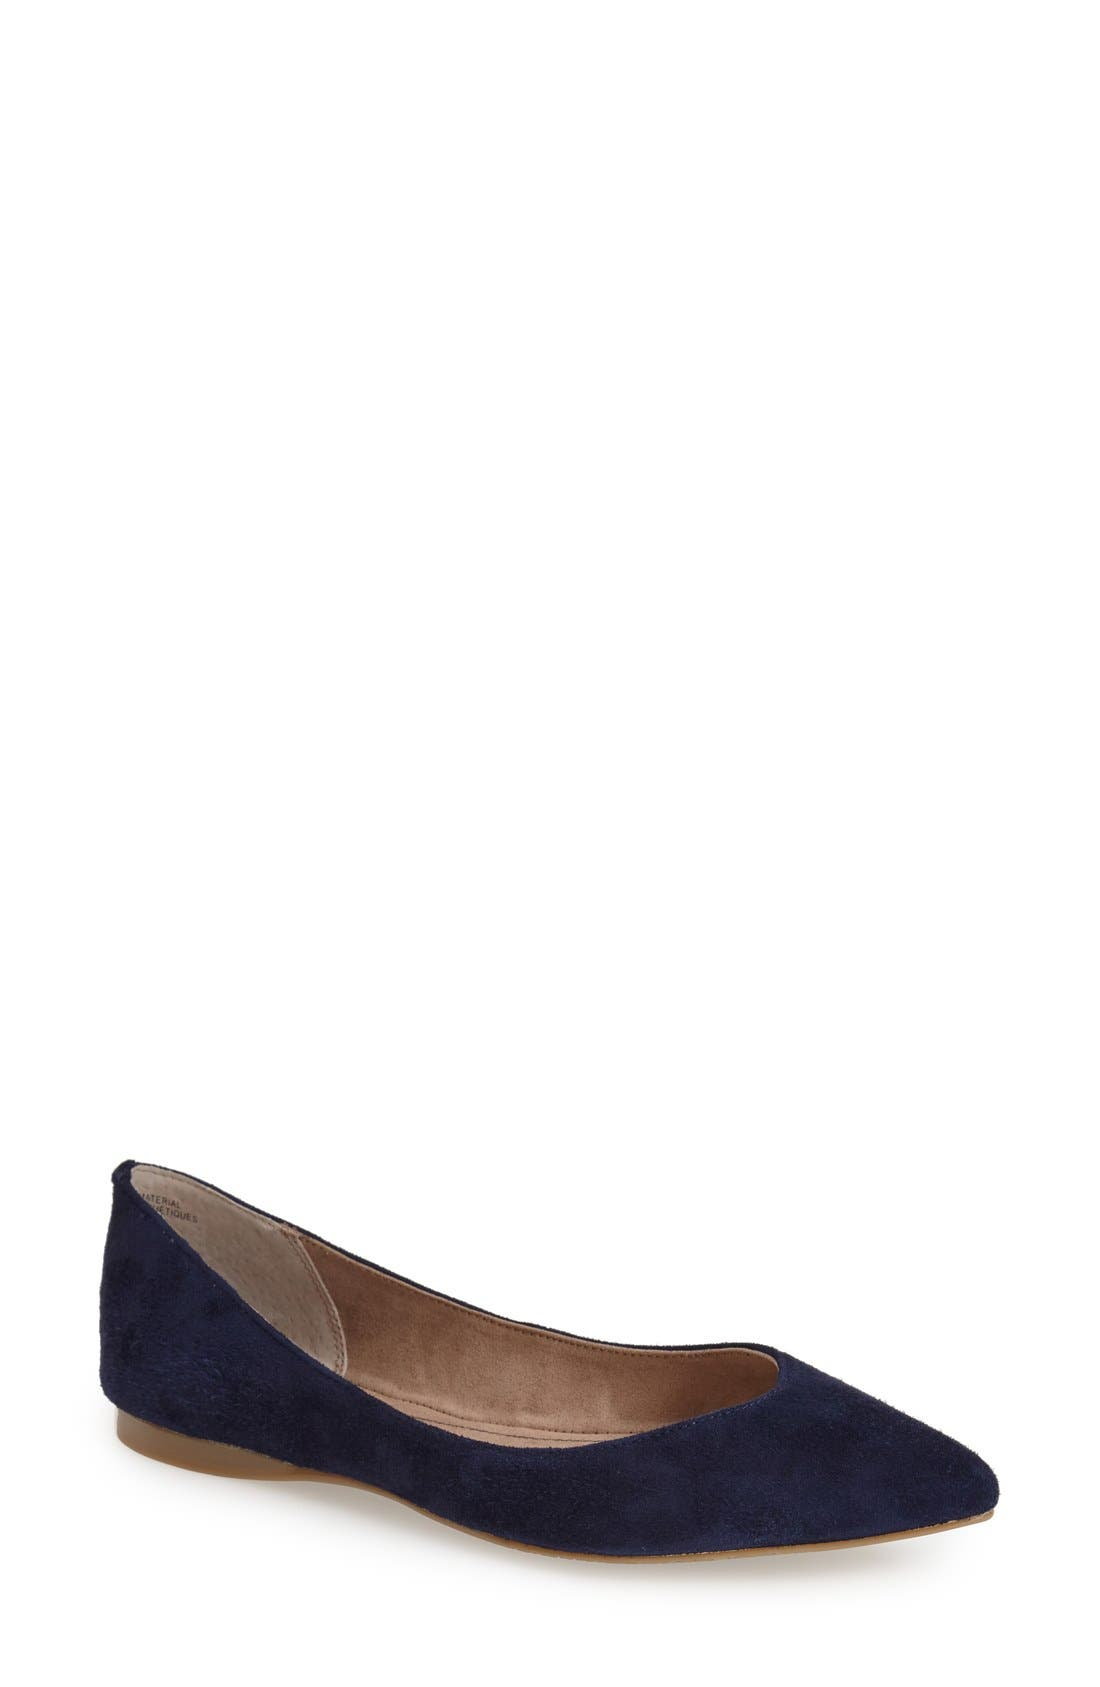 ,                             'Moveover' Pointy Toe Leather Flat,                             Main thumbnail 27, color,                             438